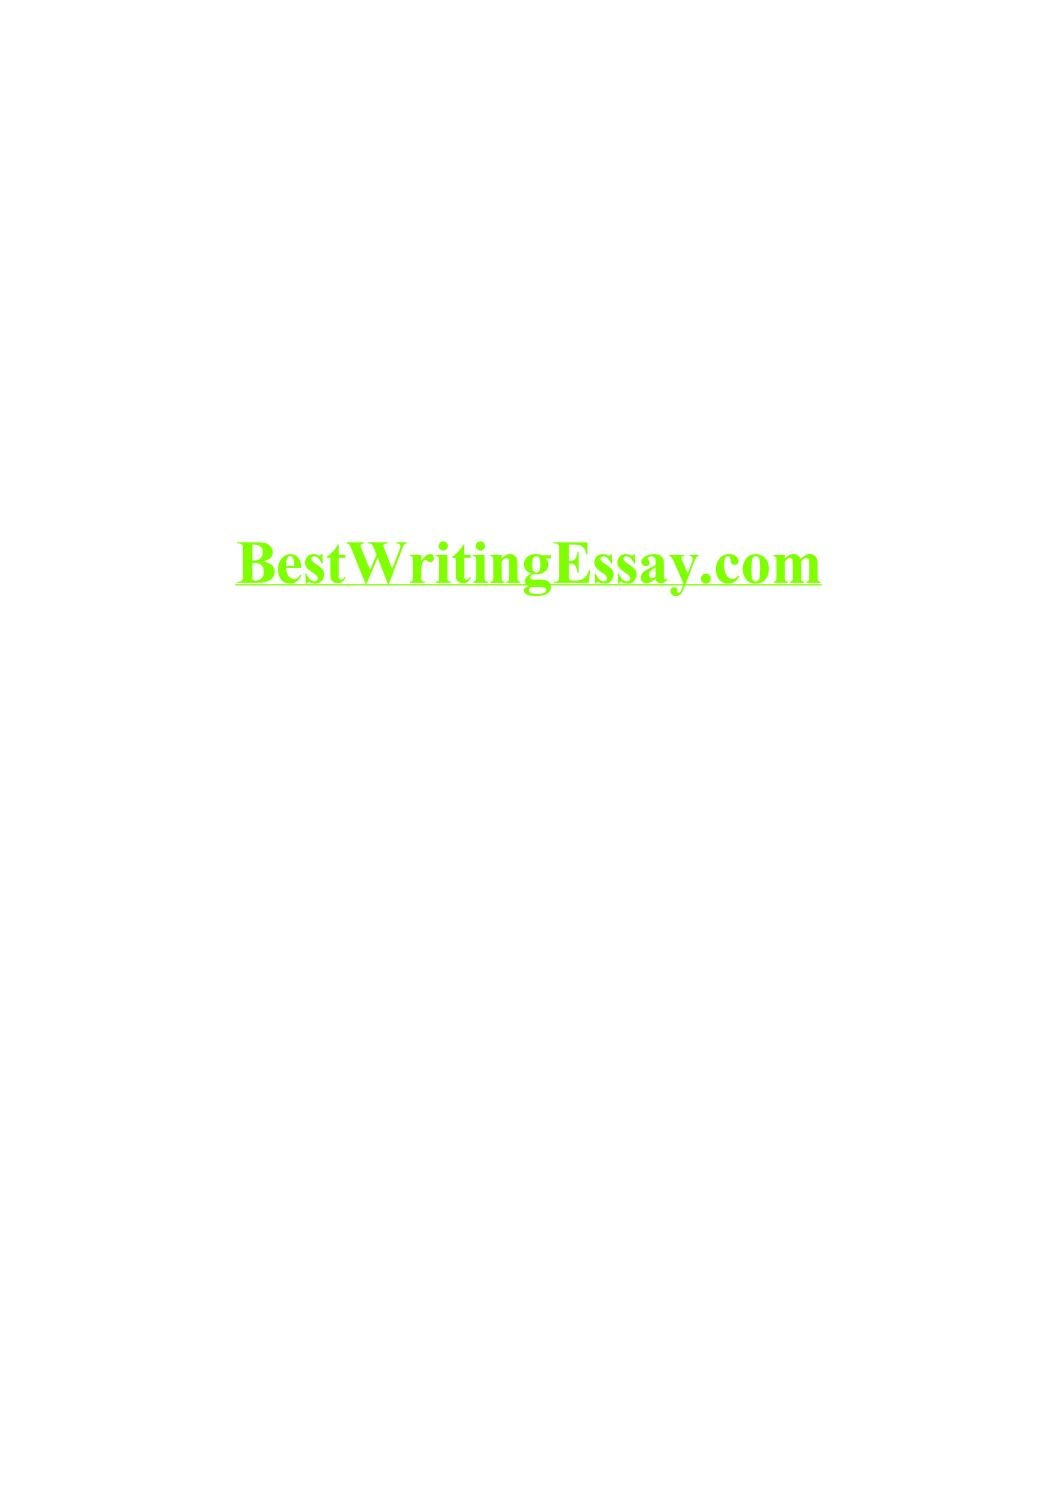 Thesis writing service cheap in boston